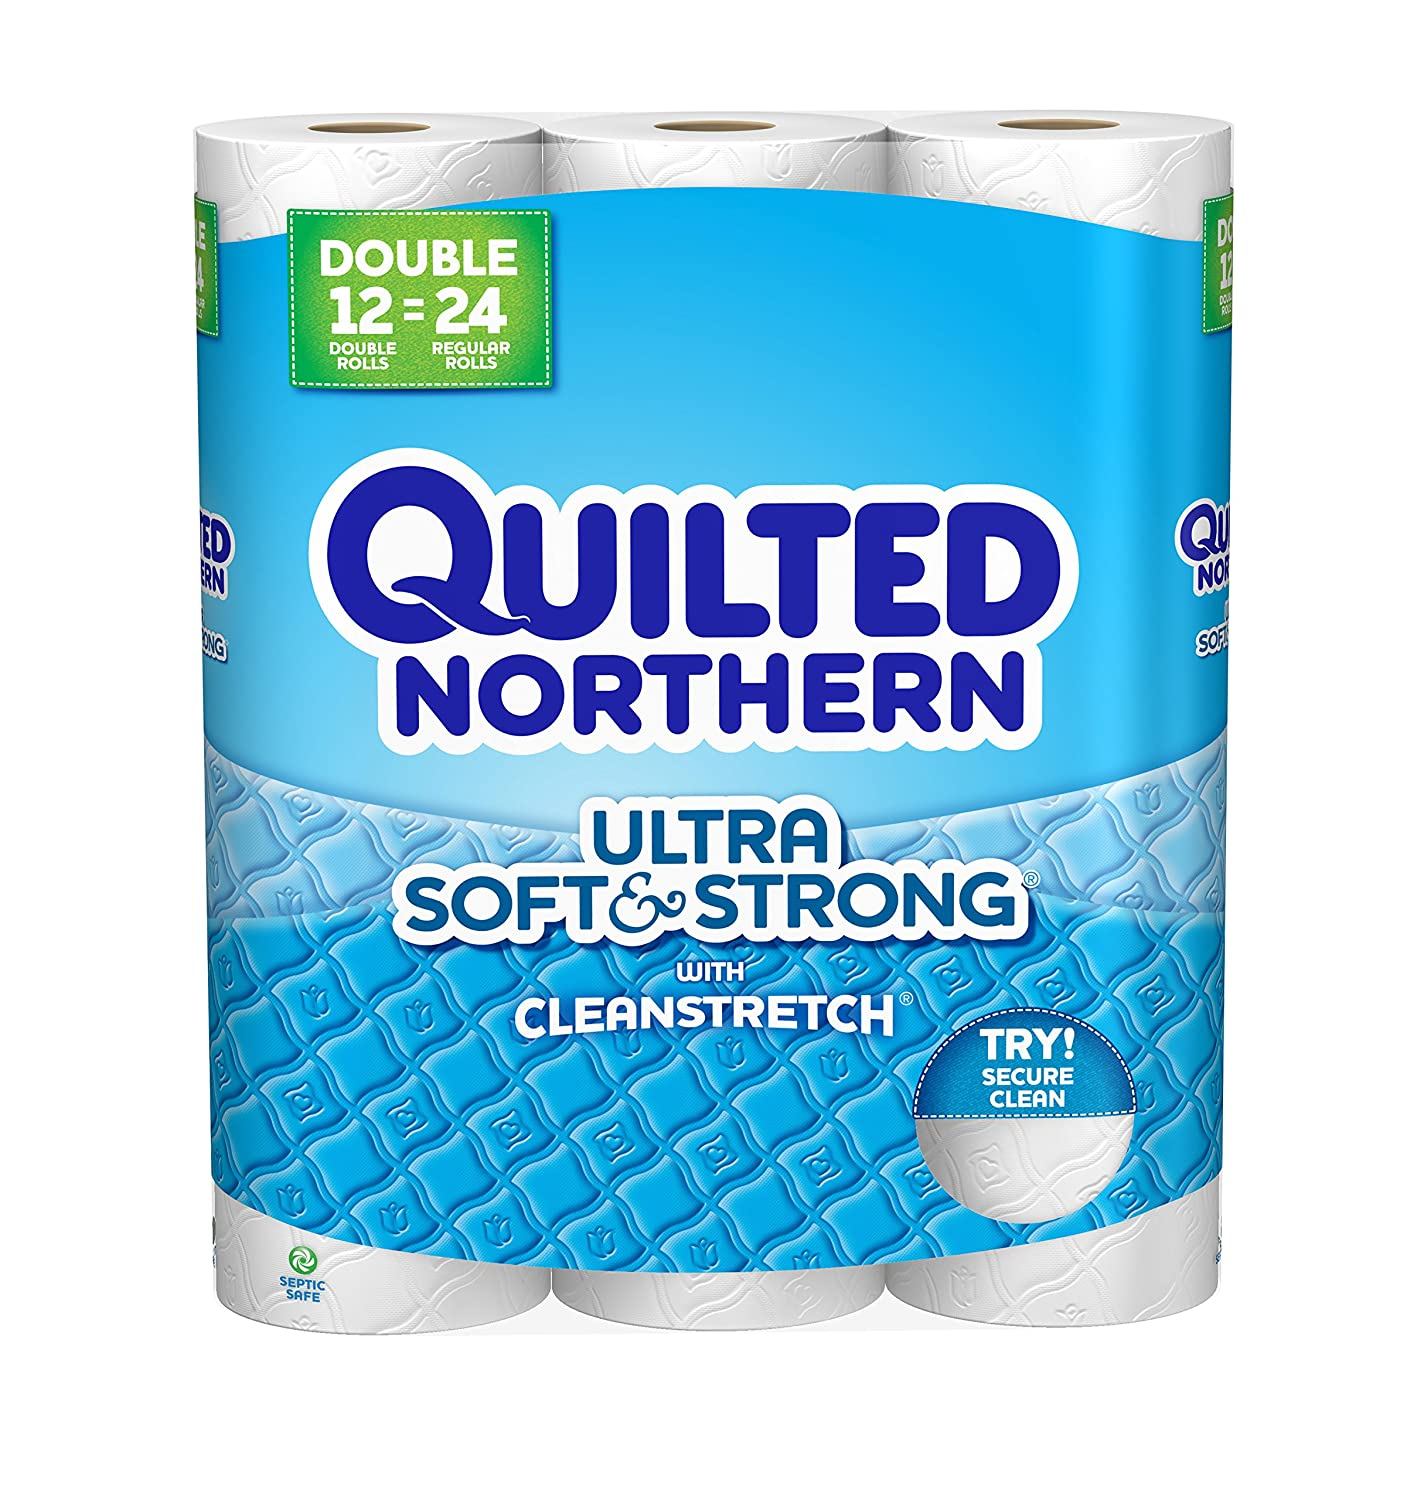 Quilted Northern Ultra Soft and Strong Bath Tissue, 12 Count by Quilted Northern B0185QYJ5M